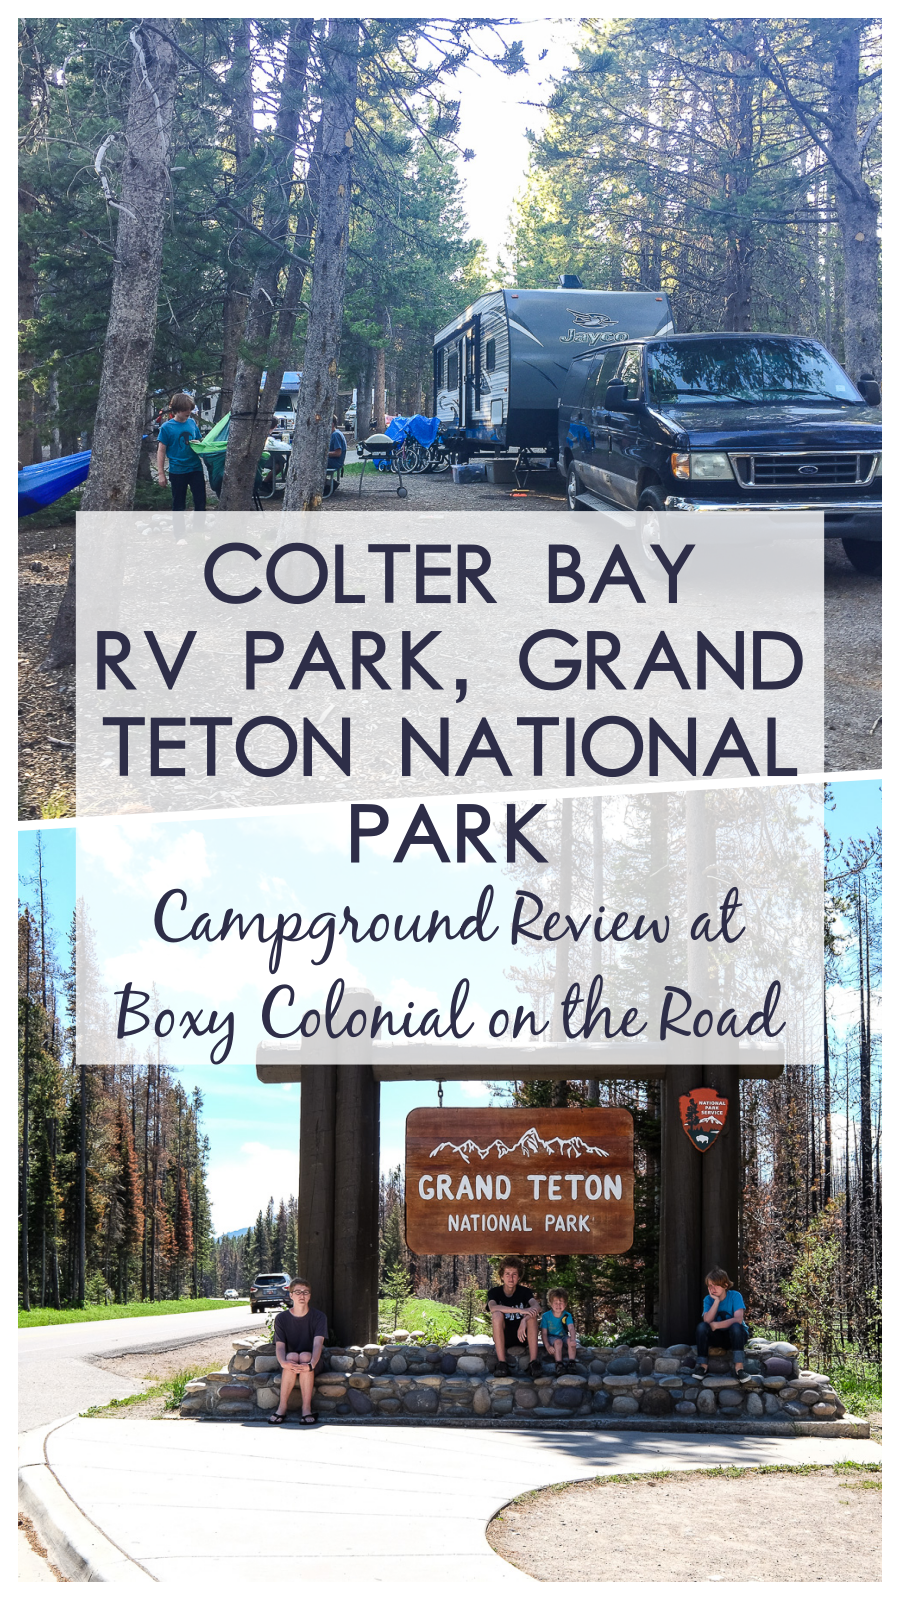 Colter Bay RV Park Campground Review, Grand Teton National Park #nps #campground #rving